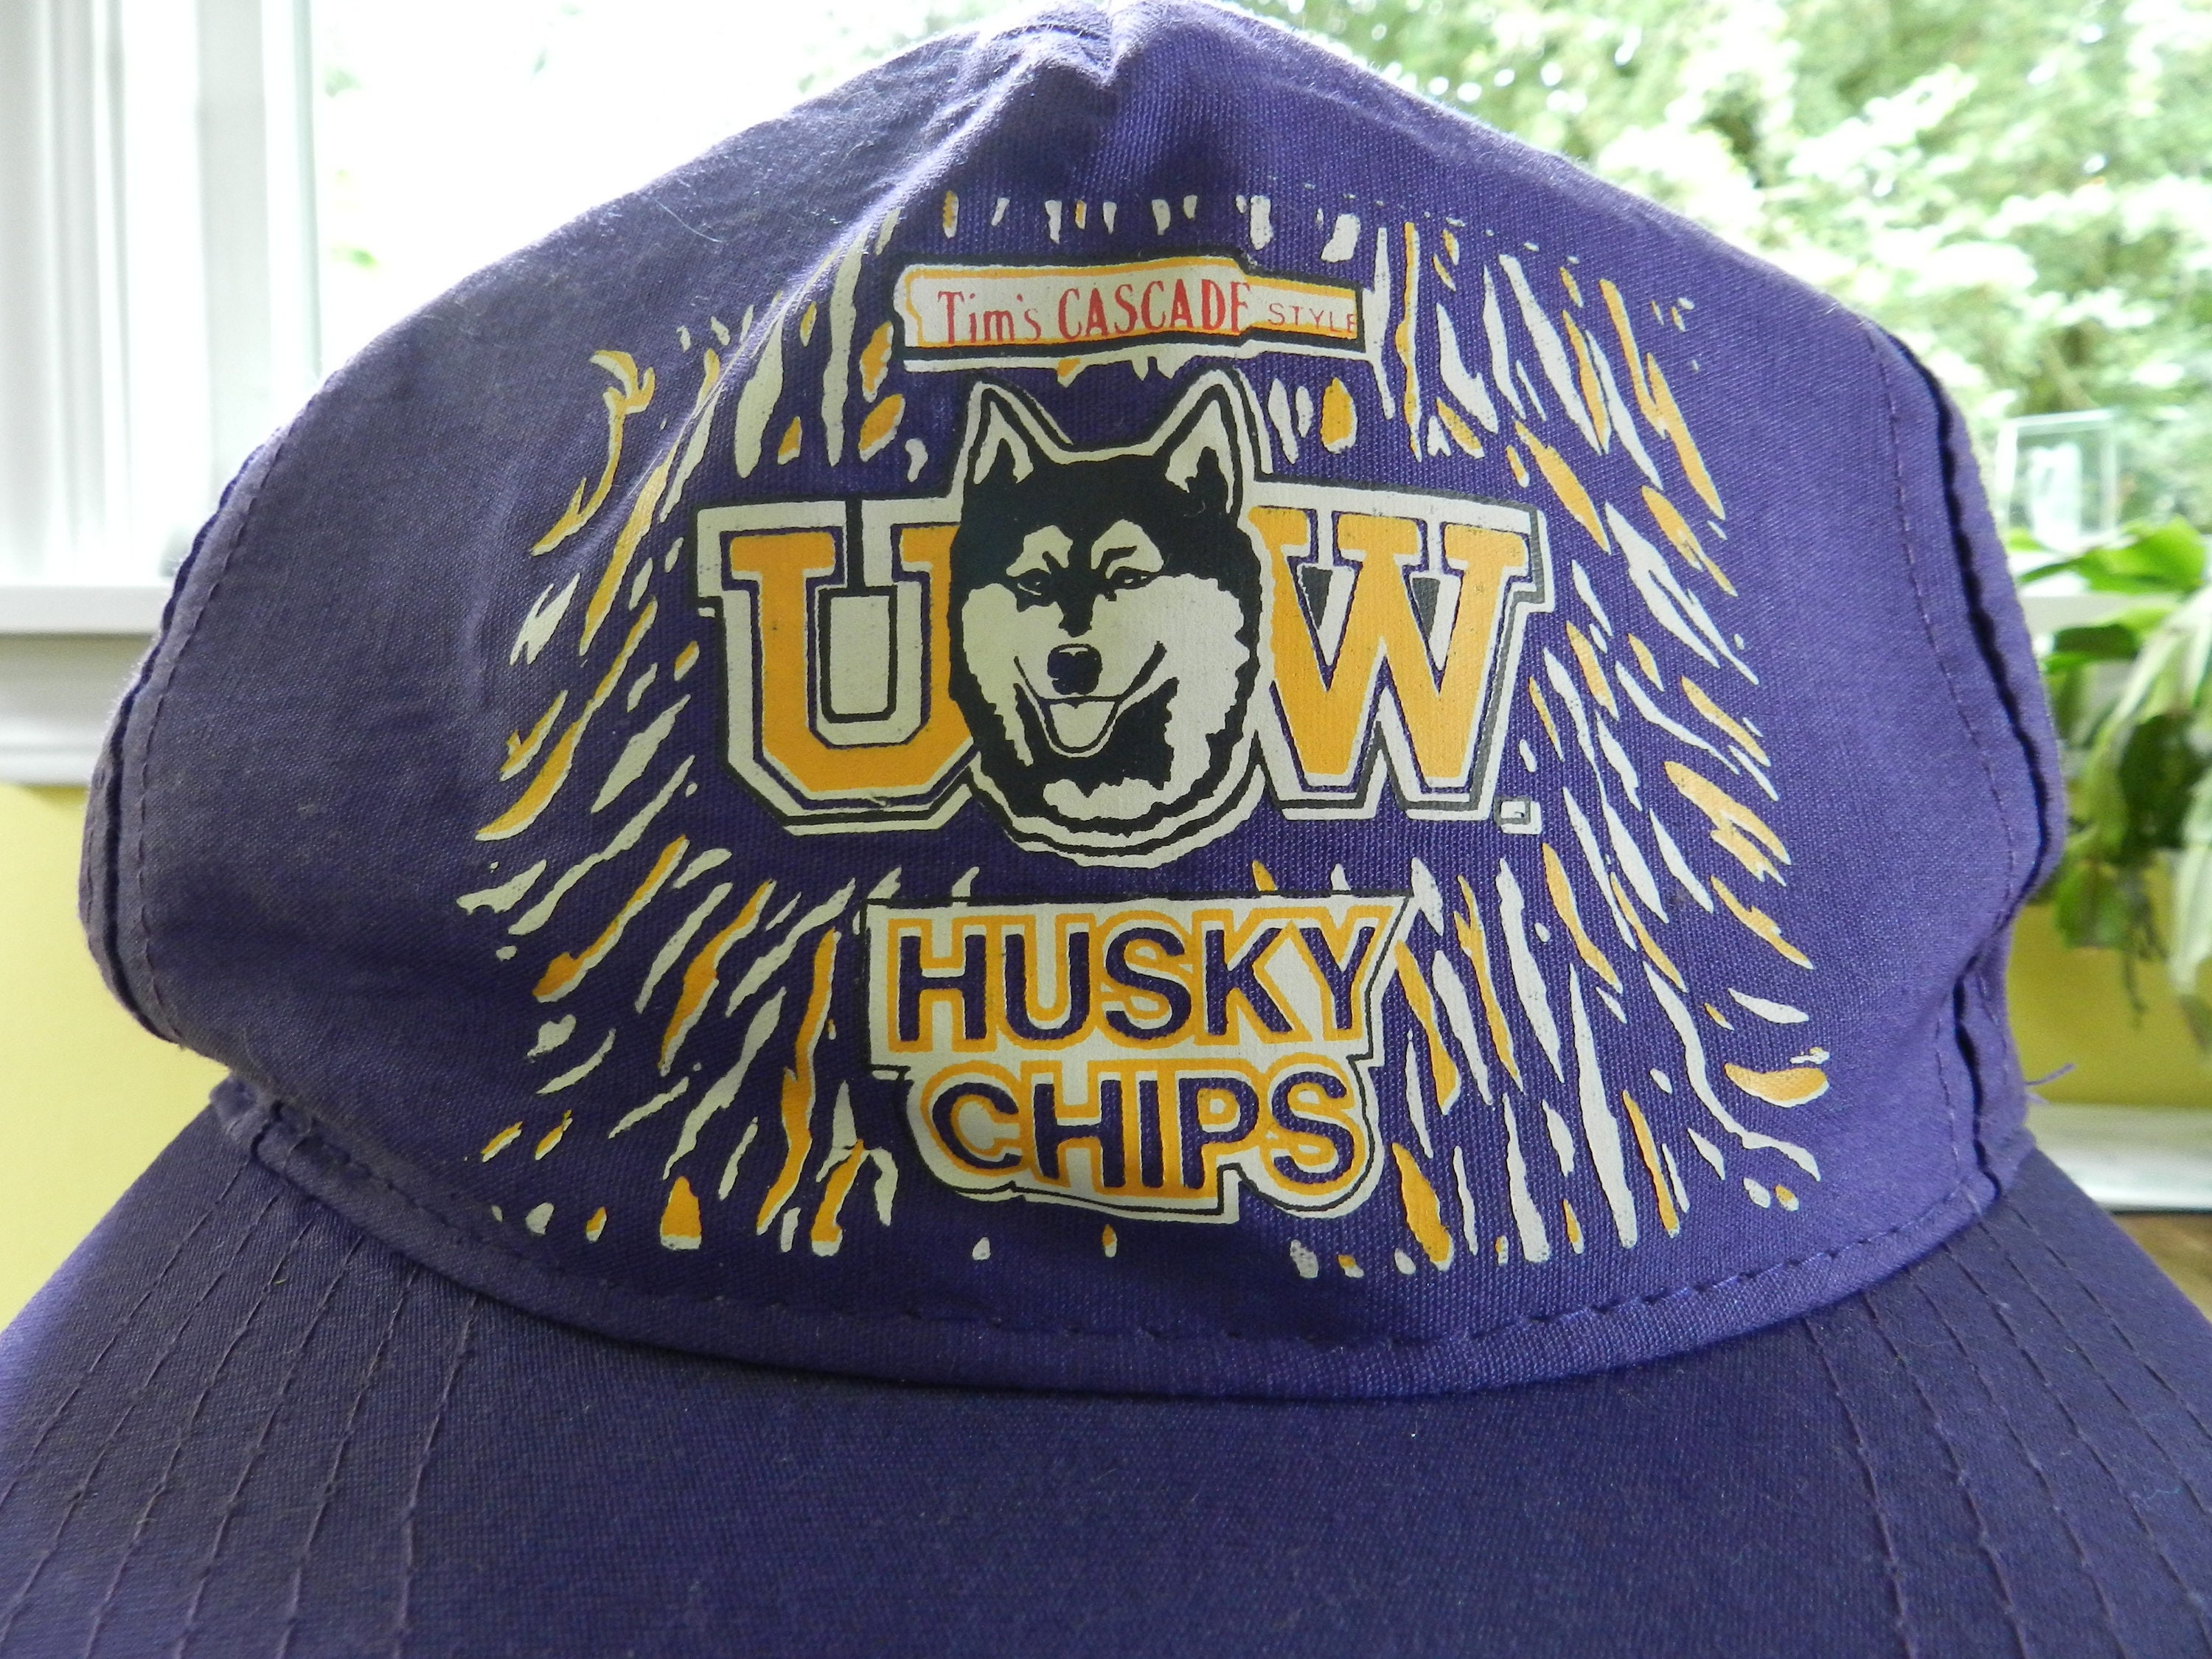 vintage UW Huskies Hat Tim s Cascade Husky Chips 90s football University of  Washington Don James Pac c2e887156